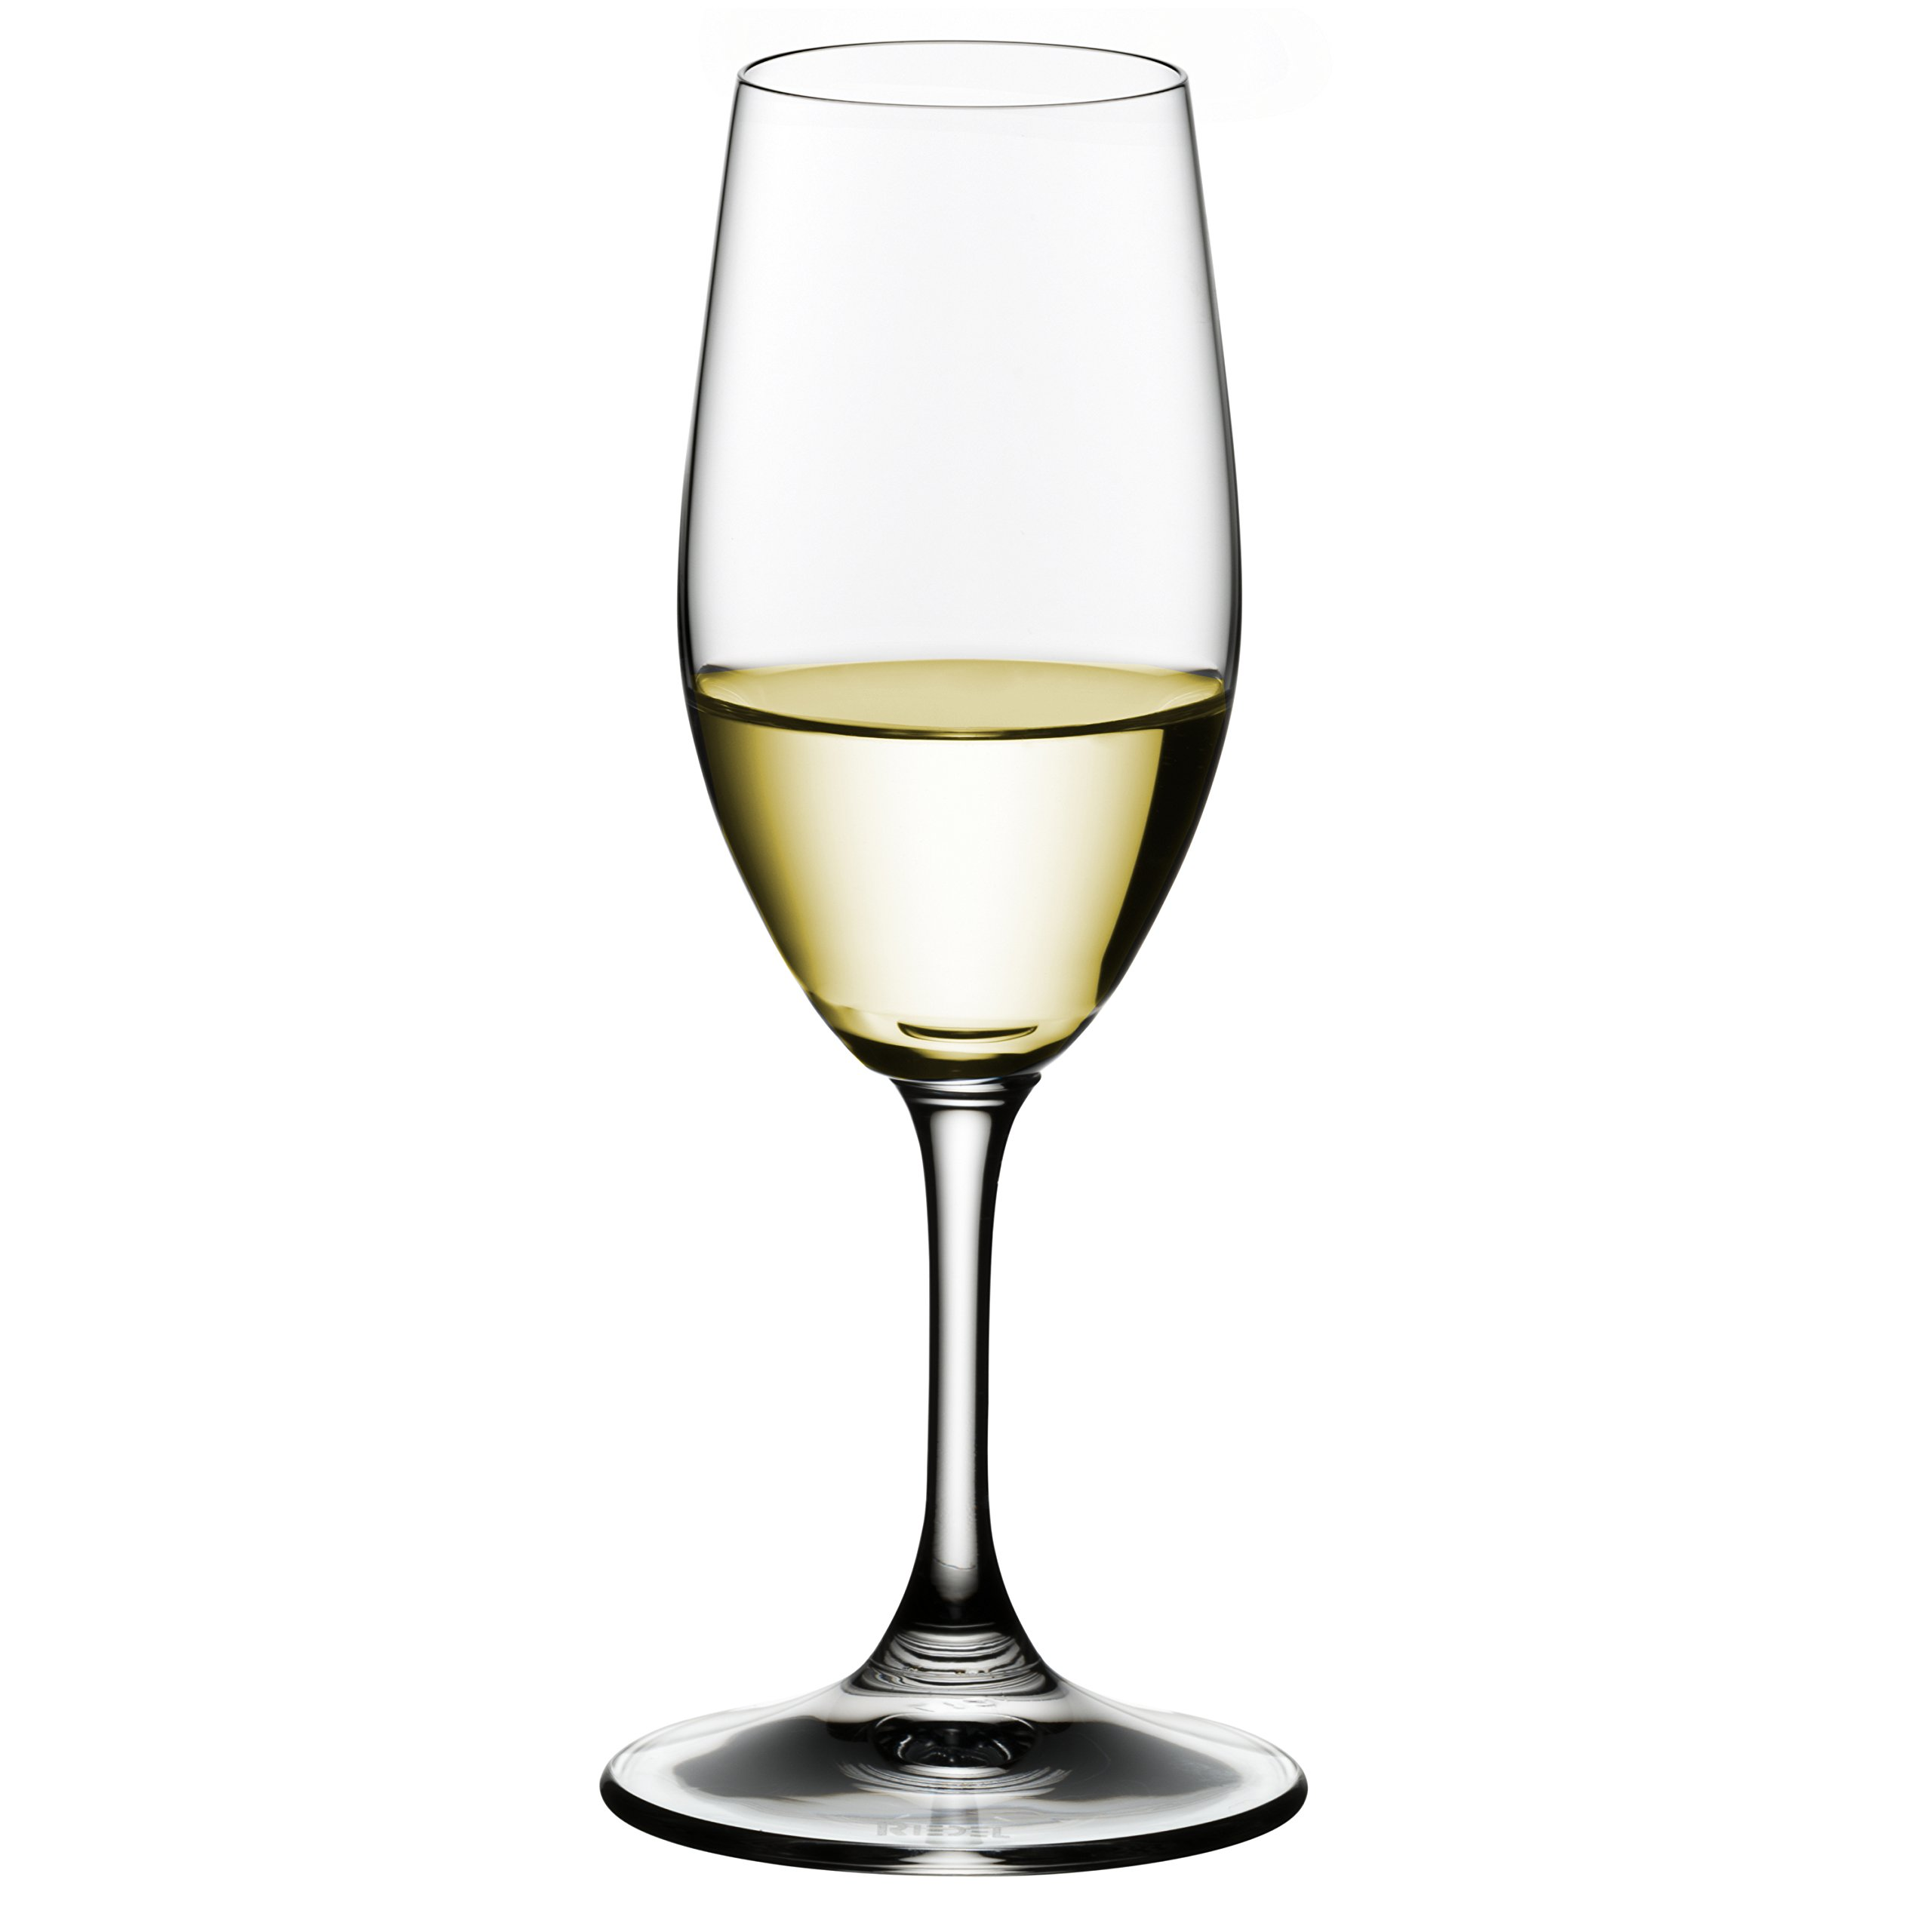 Riedel Ouverture Spirits Bar Glass, Set of 4